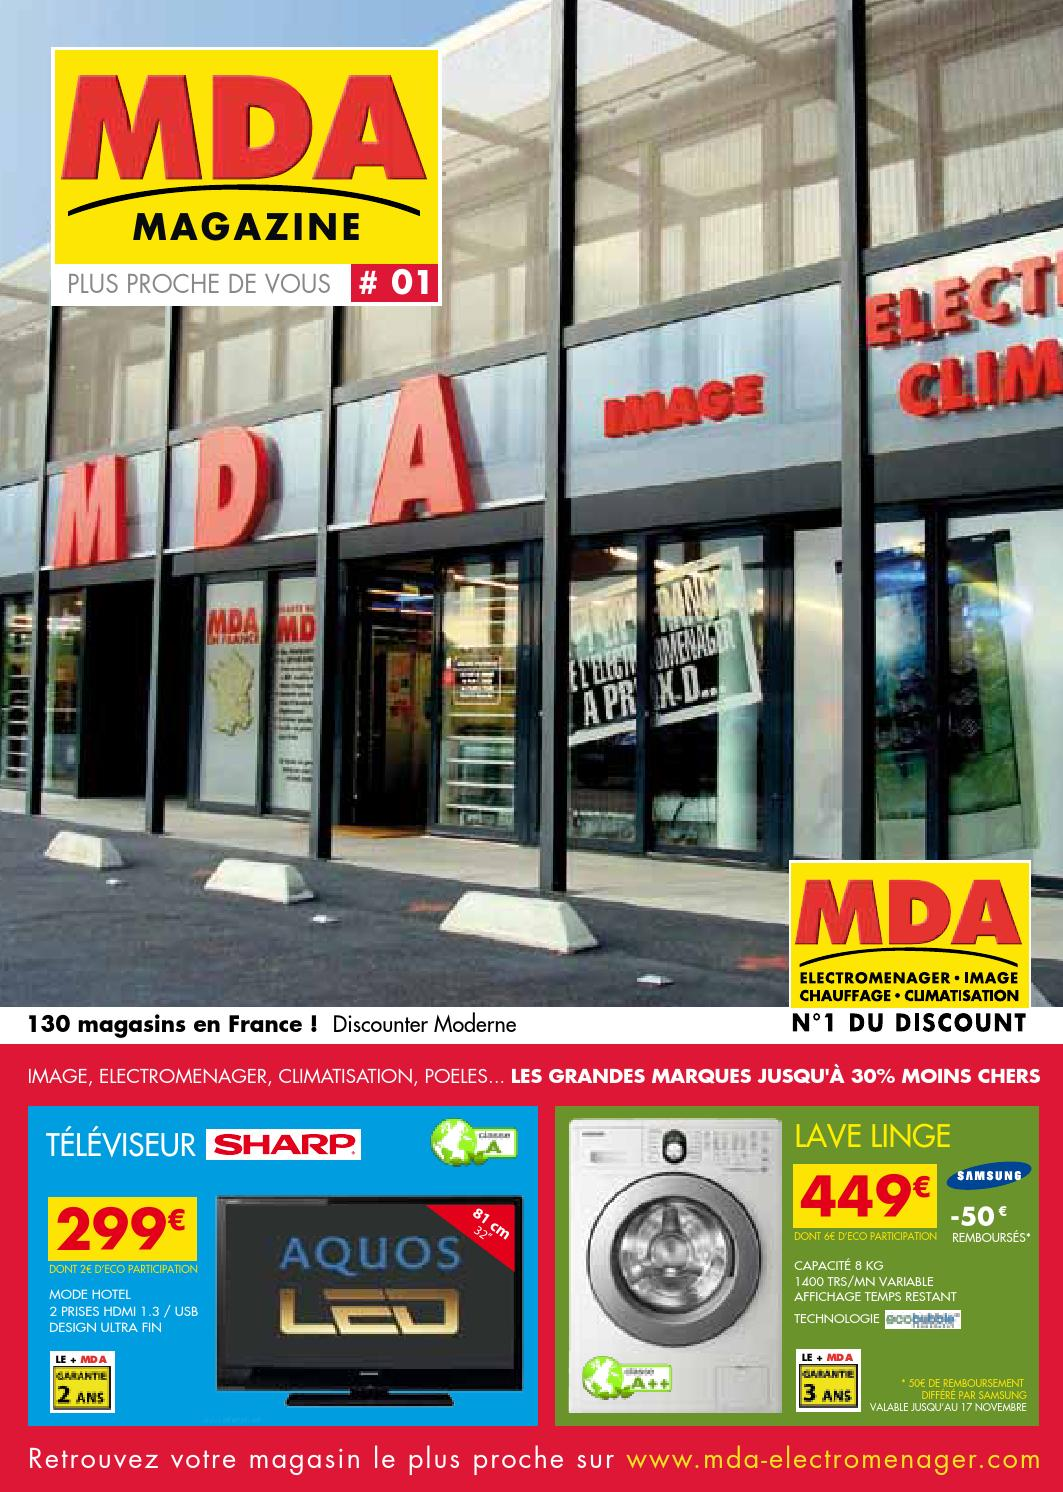 mda magazine 01 by mog design issuu